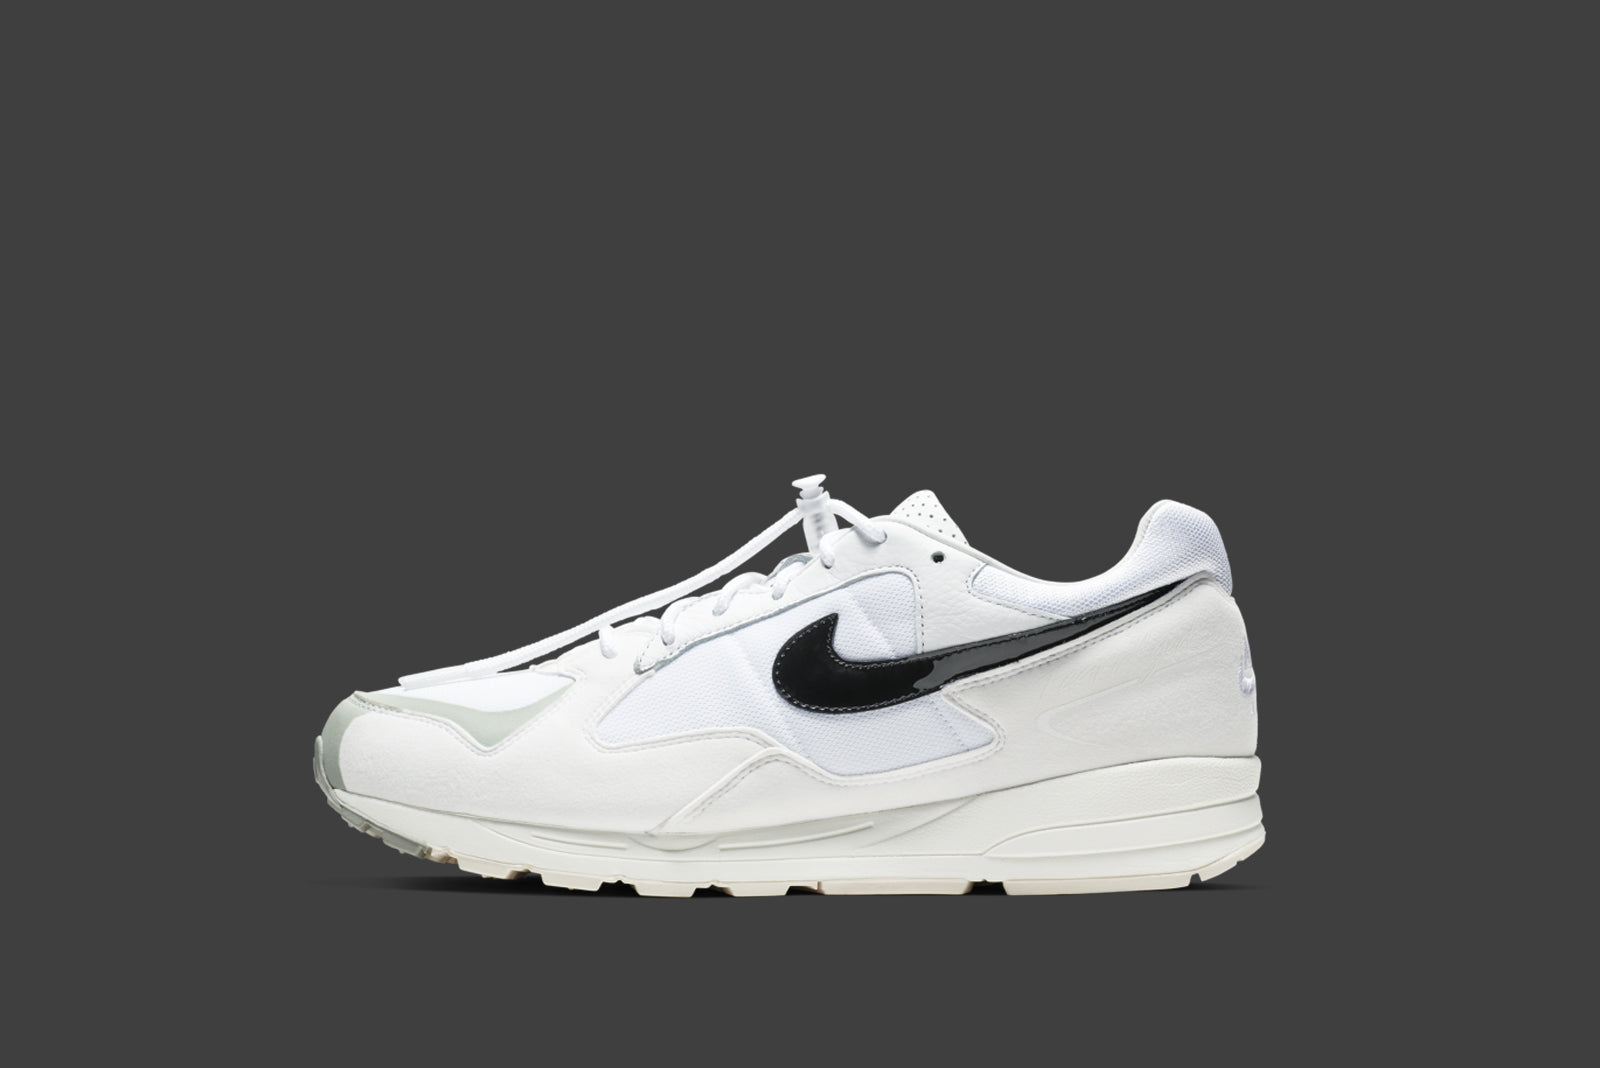 Nike Air Skylon II x Fear Of God BQ2752-100. White   Black   Light Bone    Sail Price  £105.00. Launch  ONLINE Raffle  Entry open on Monday 24th of  December ... 29269d293